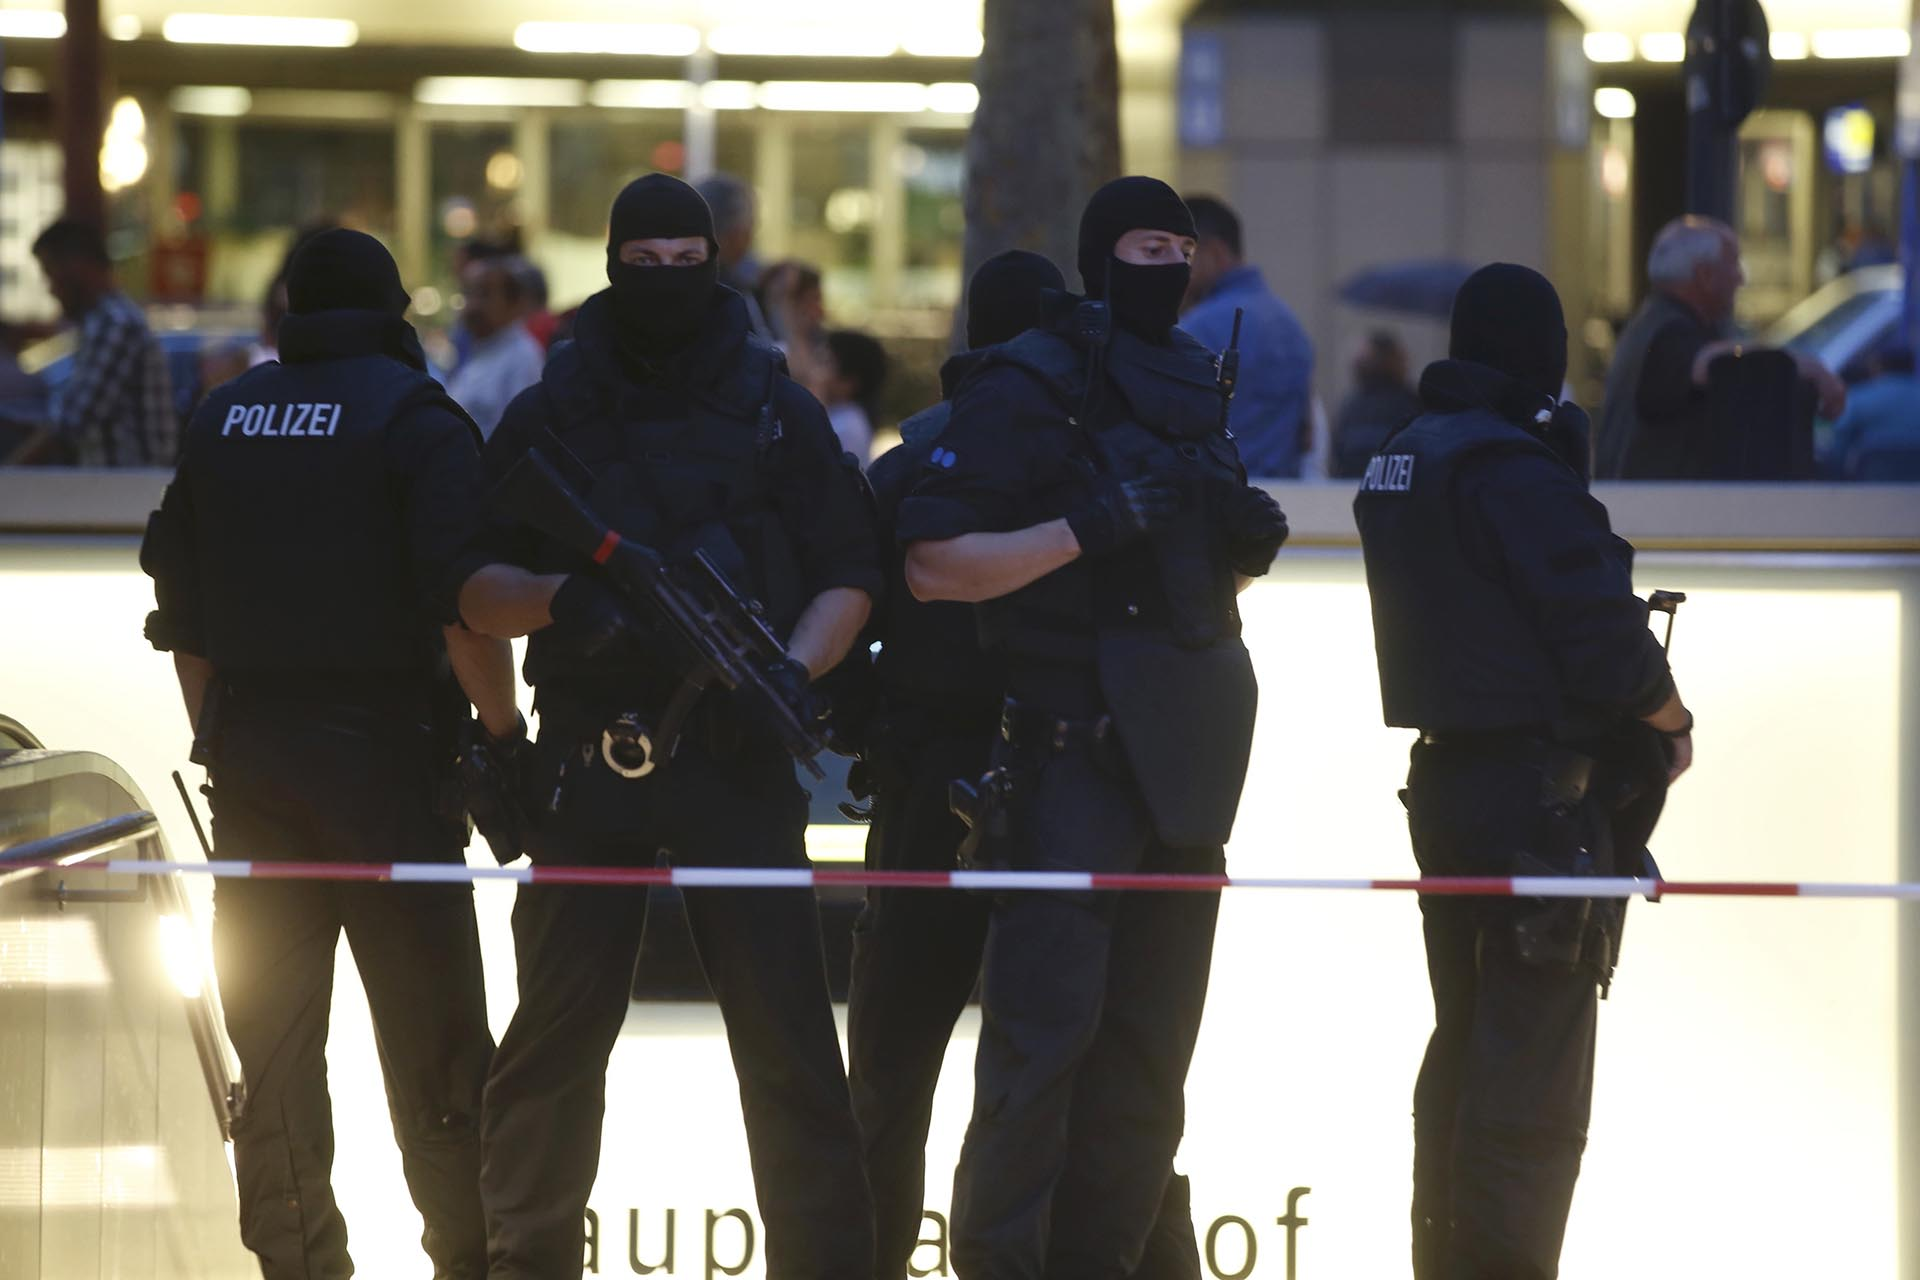 Special force police officers stand guard at an entrance of the main train station, following a shooting rampage at the Olympia shopping mall in Munich, Germany July 22, 2016. REUTERS/Michael Dalder